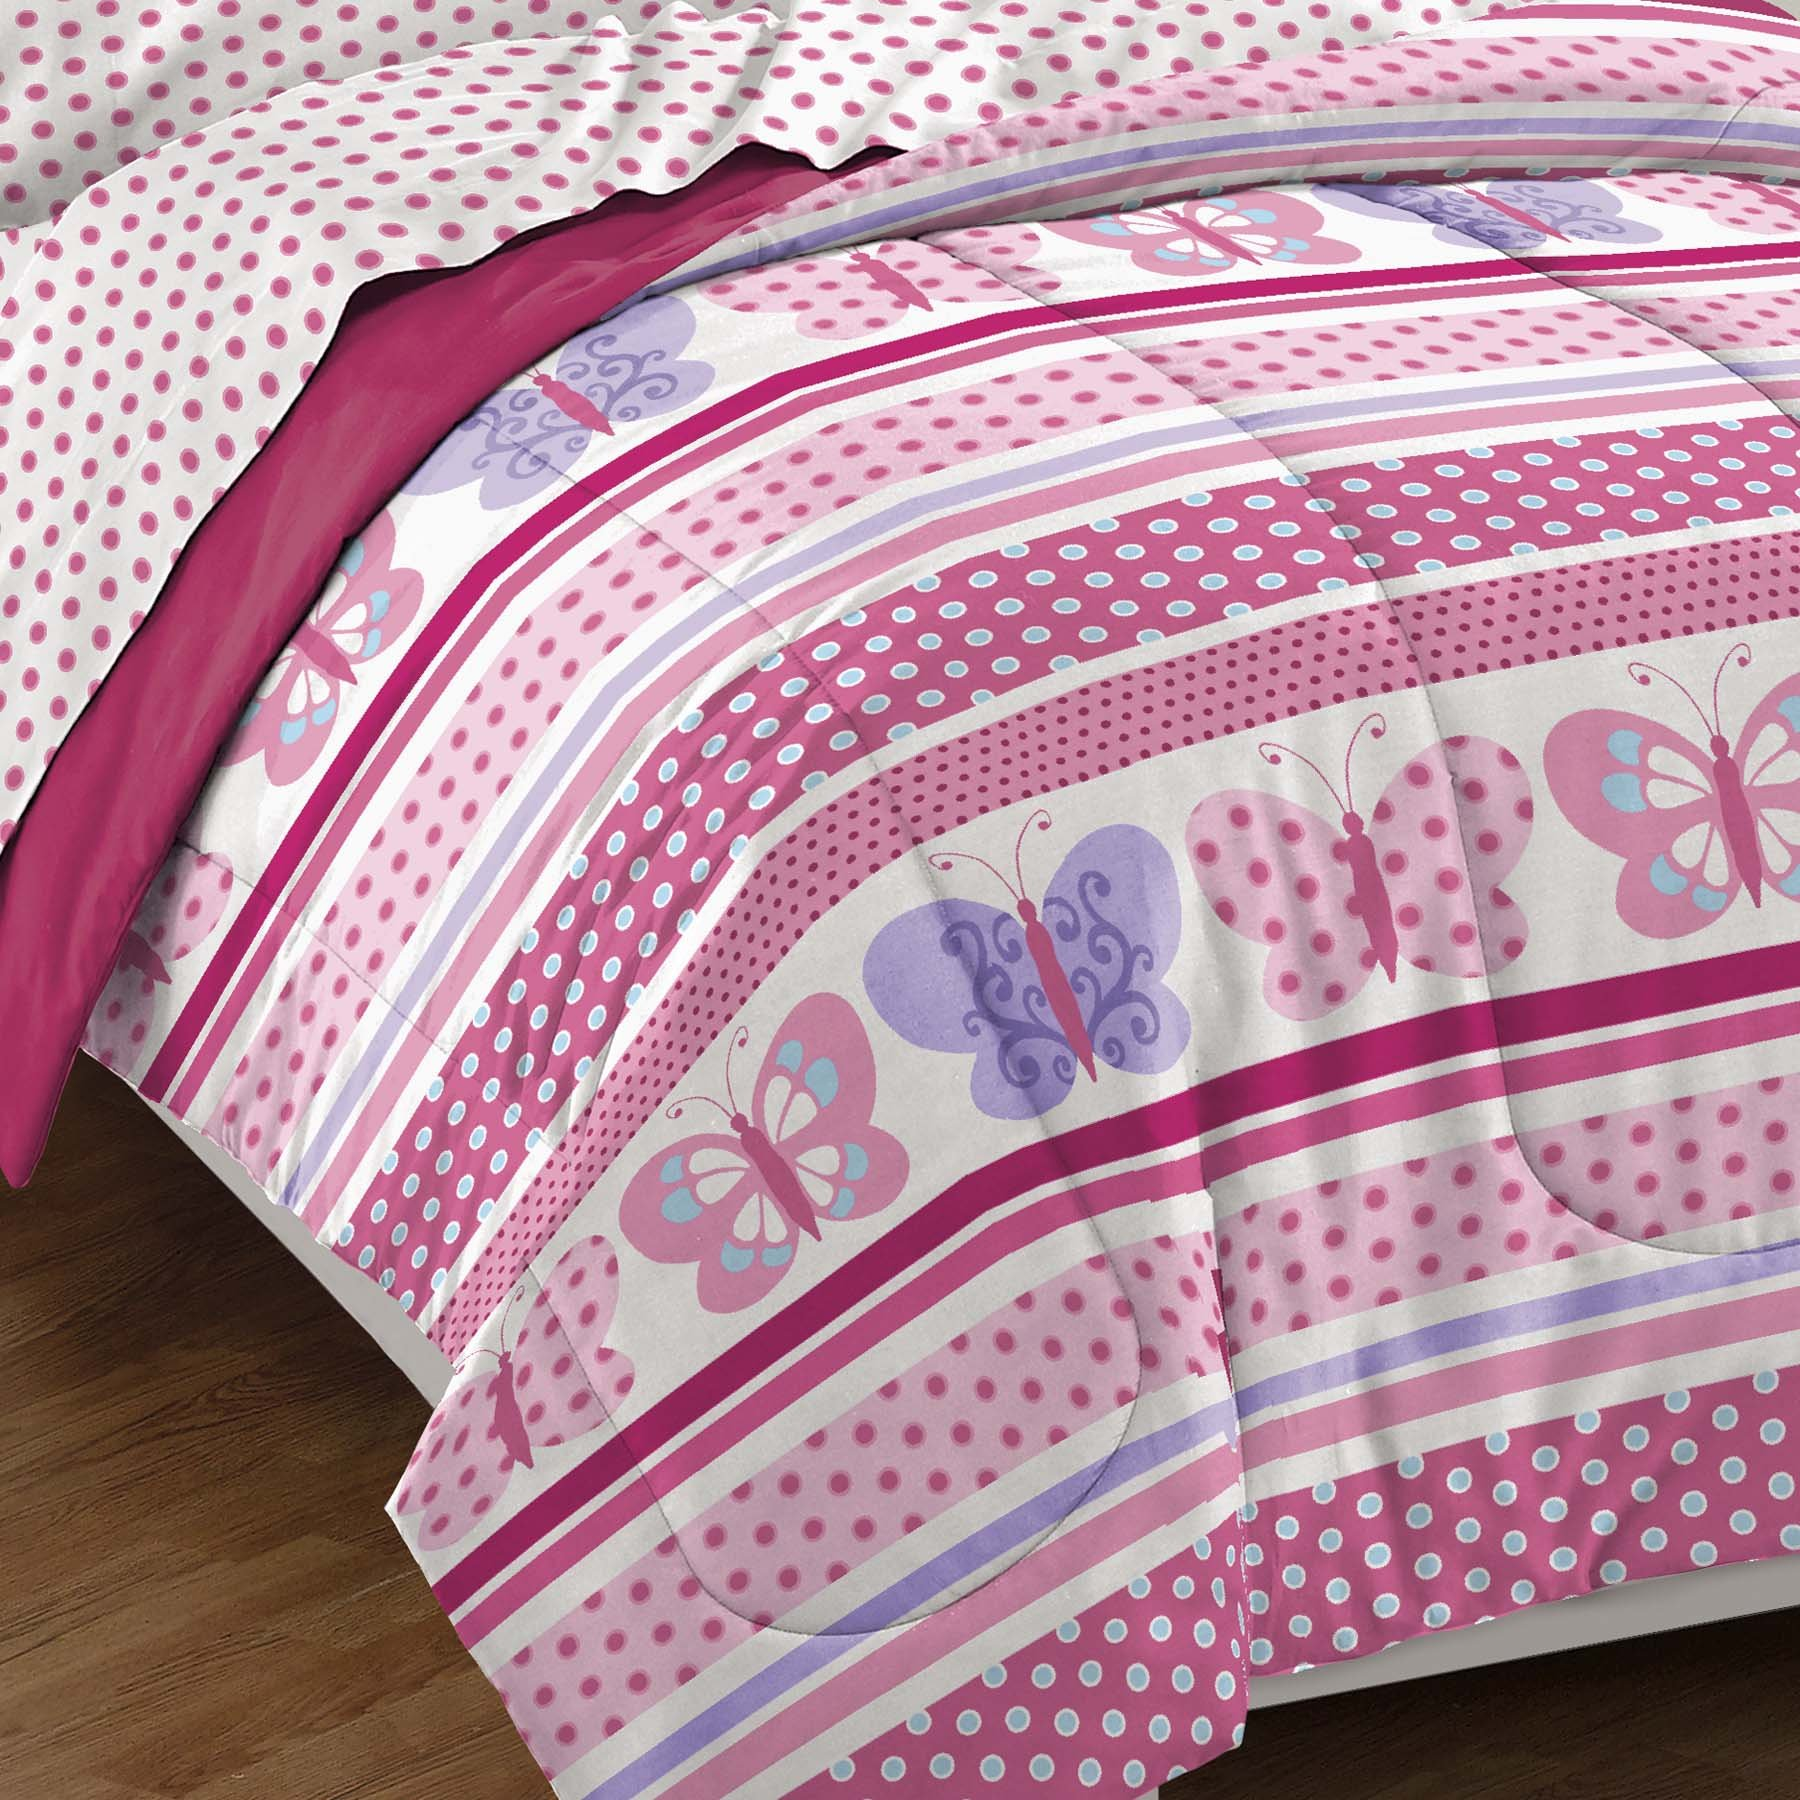 Dream Factory Butterfly Dots Ultra Soft Microfiber Girls Comforter Set, Pink, Twin by Dream Factory (Image #4)